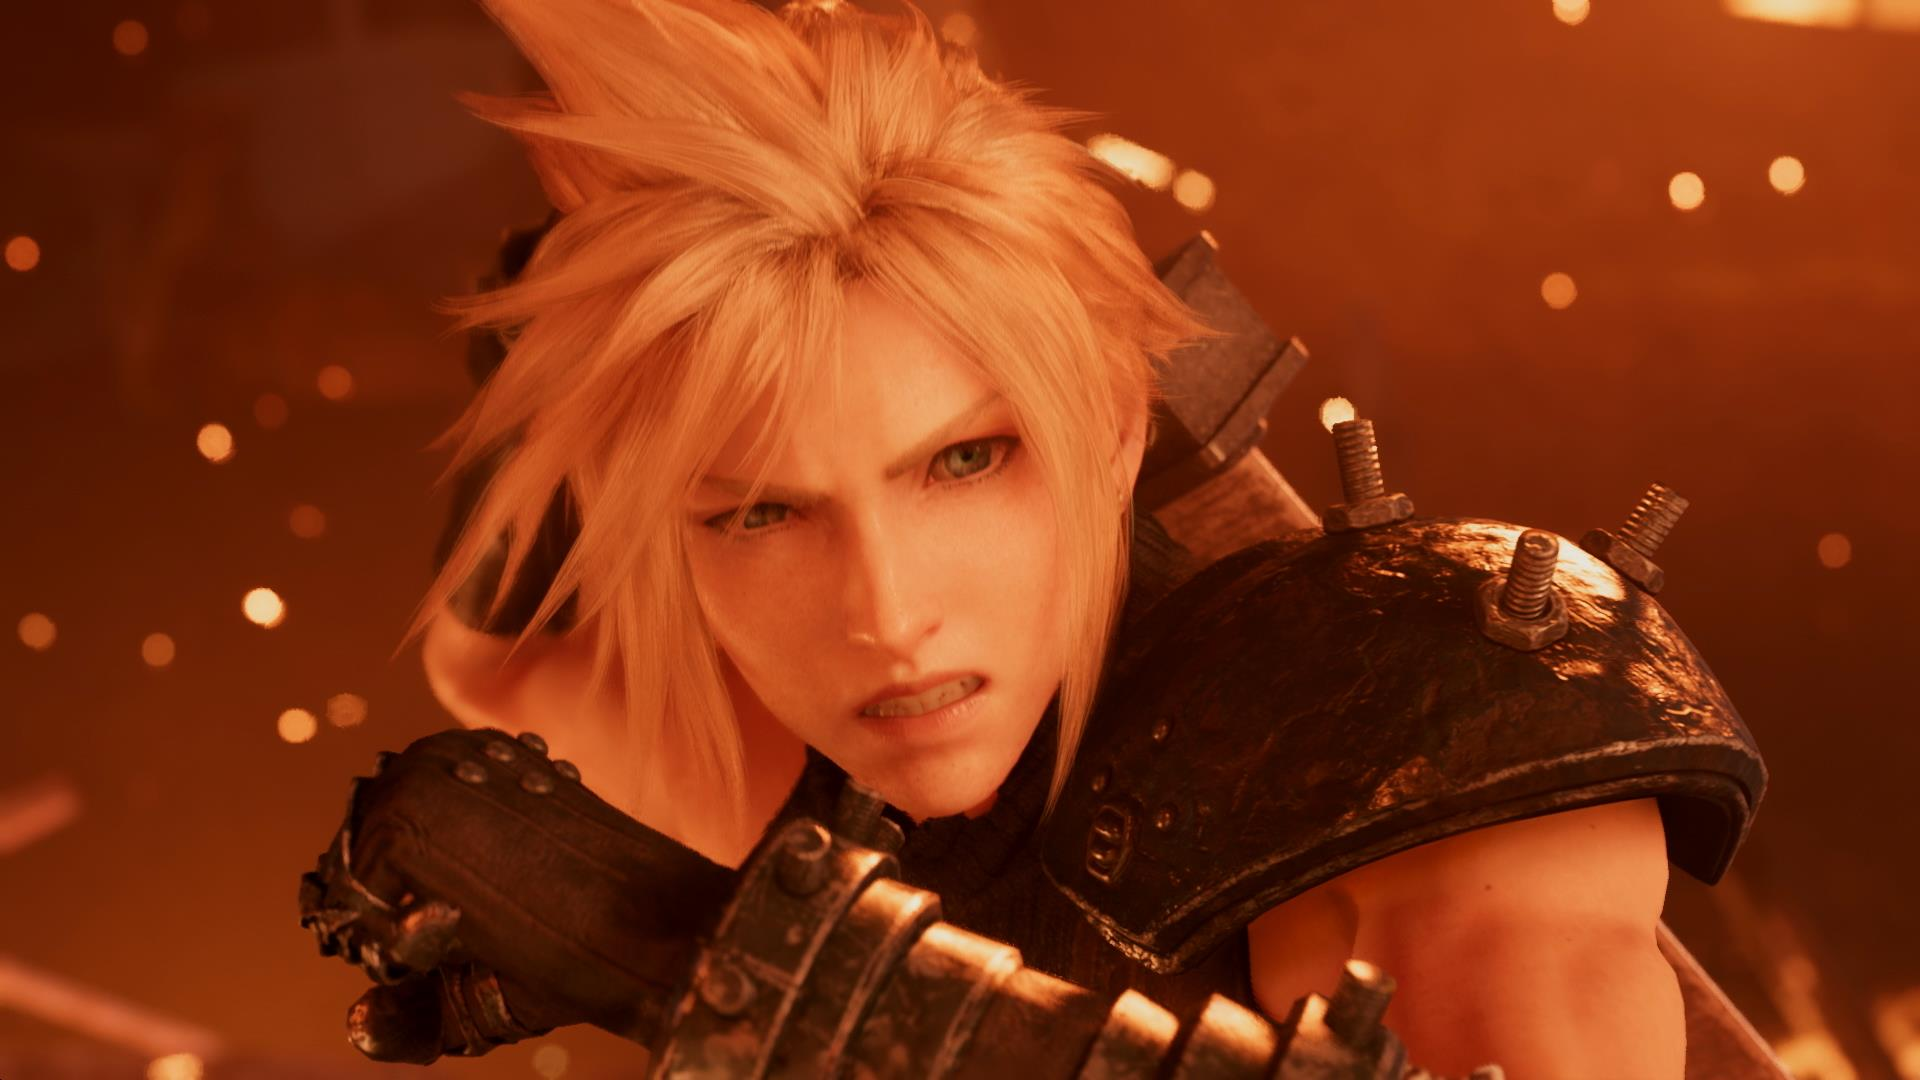 Image from Final Fantasy VII remake - review on The Fantasy Network News